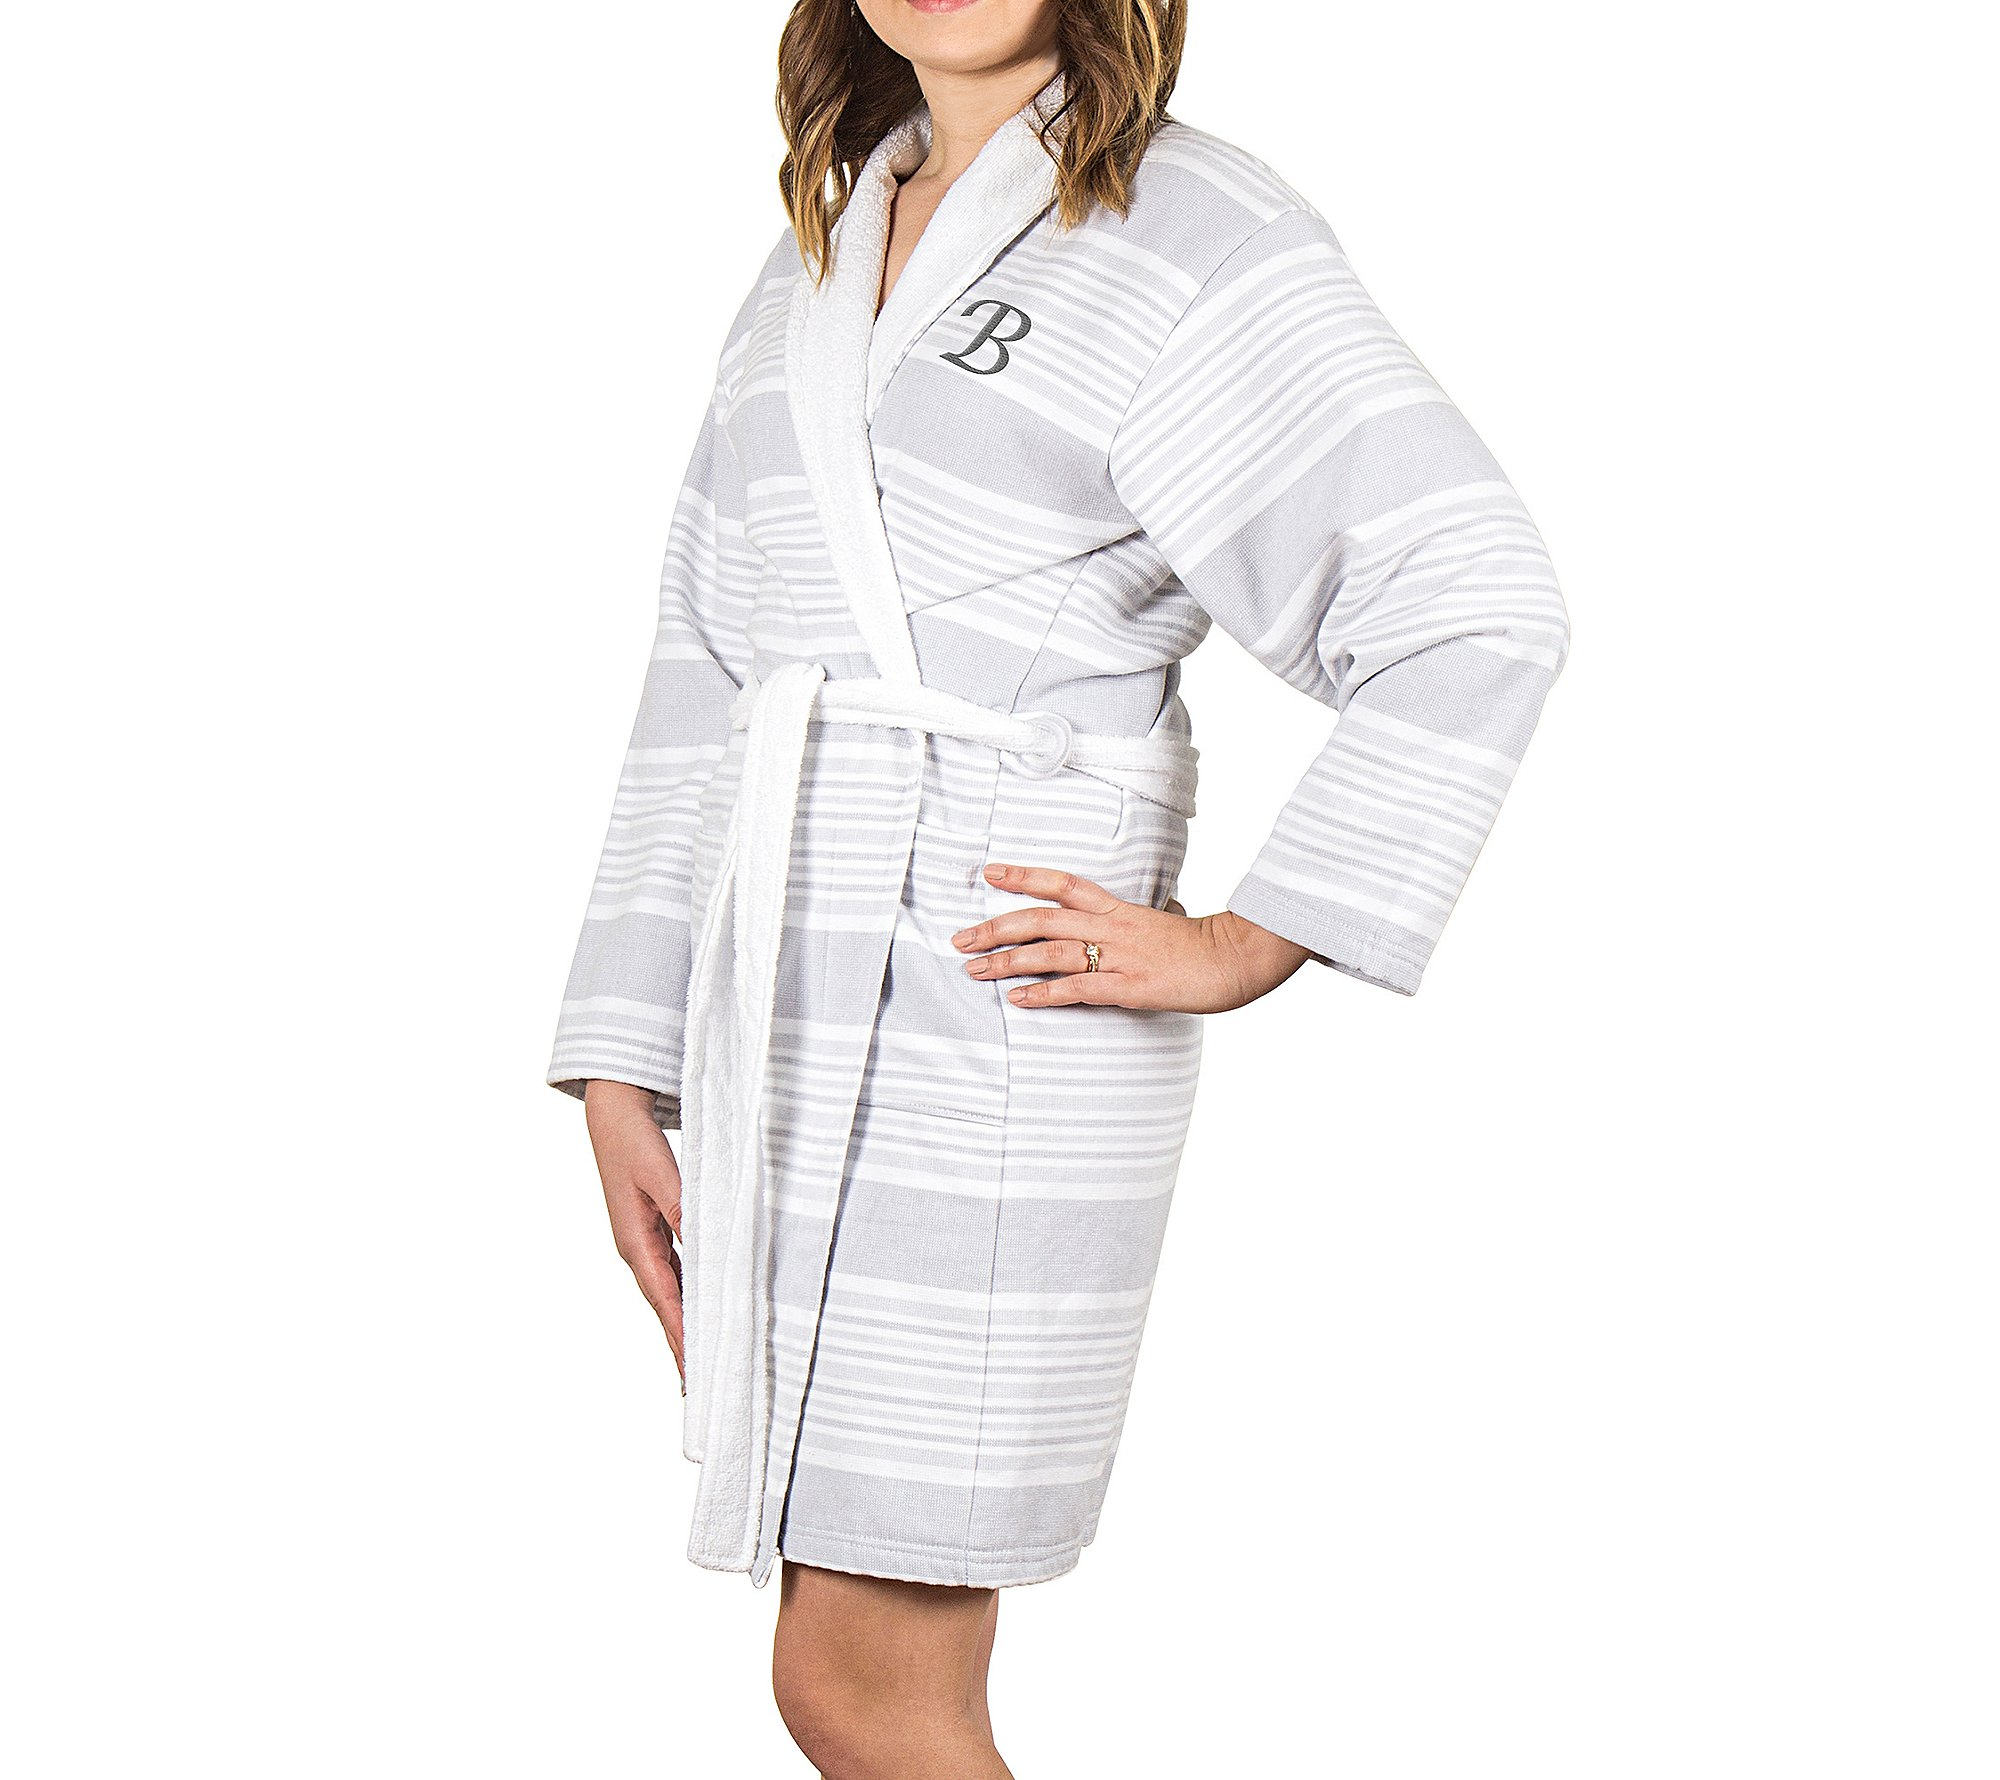 Cathy's Concepts Personalized Turkish Cotton Robe by Cathy's Concepts